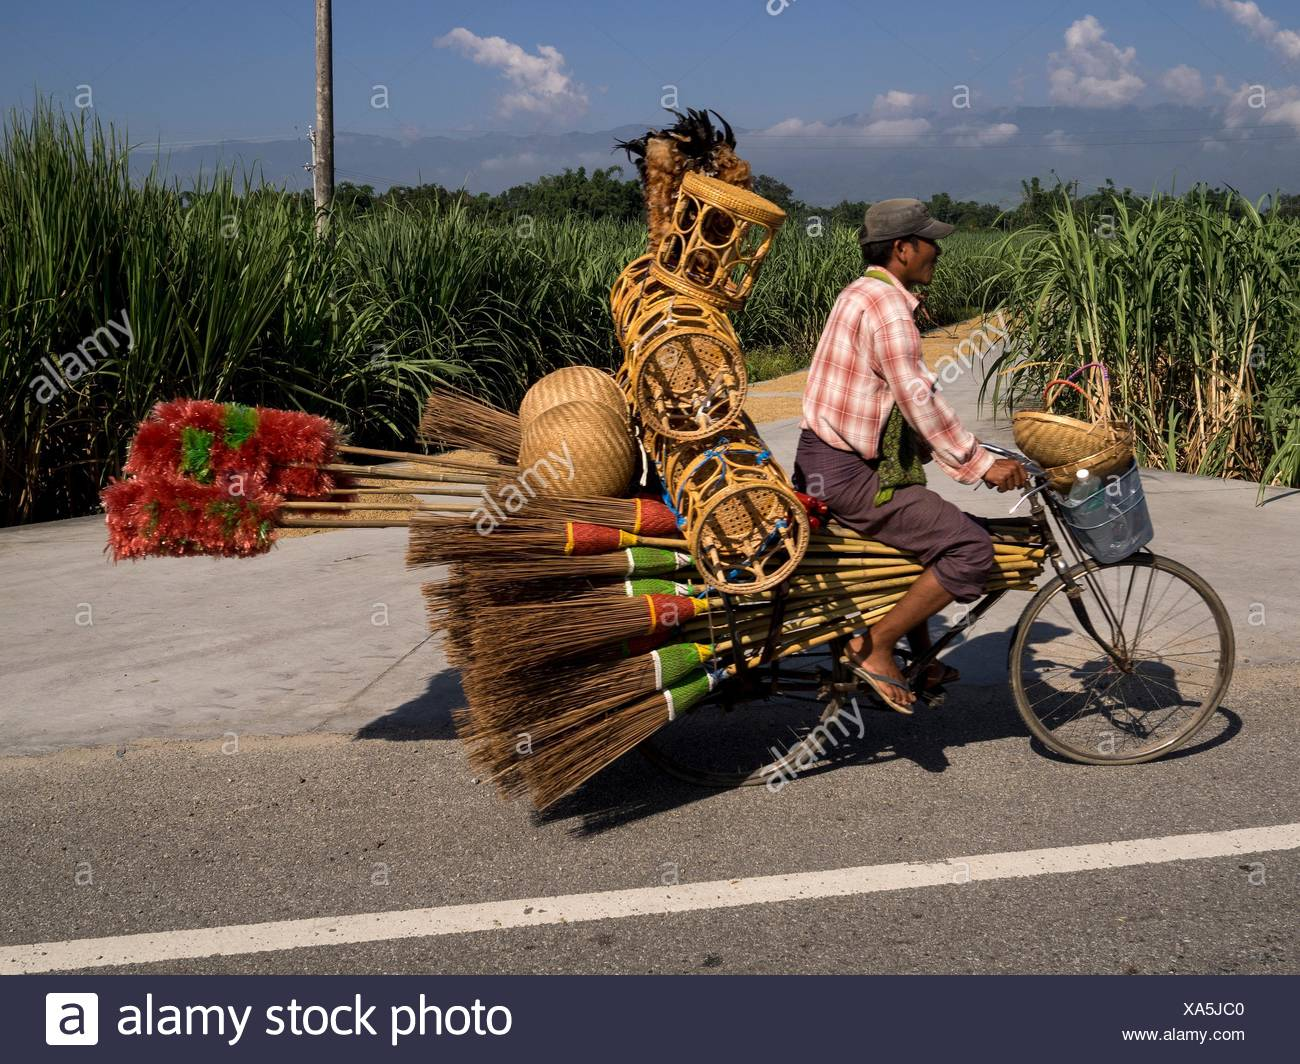 A vendor rides his bicycle laden with brooms, stools, brushes and baskets. - Stock Image